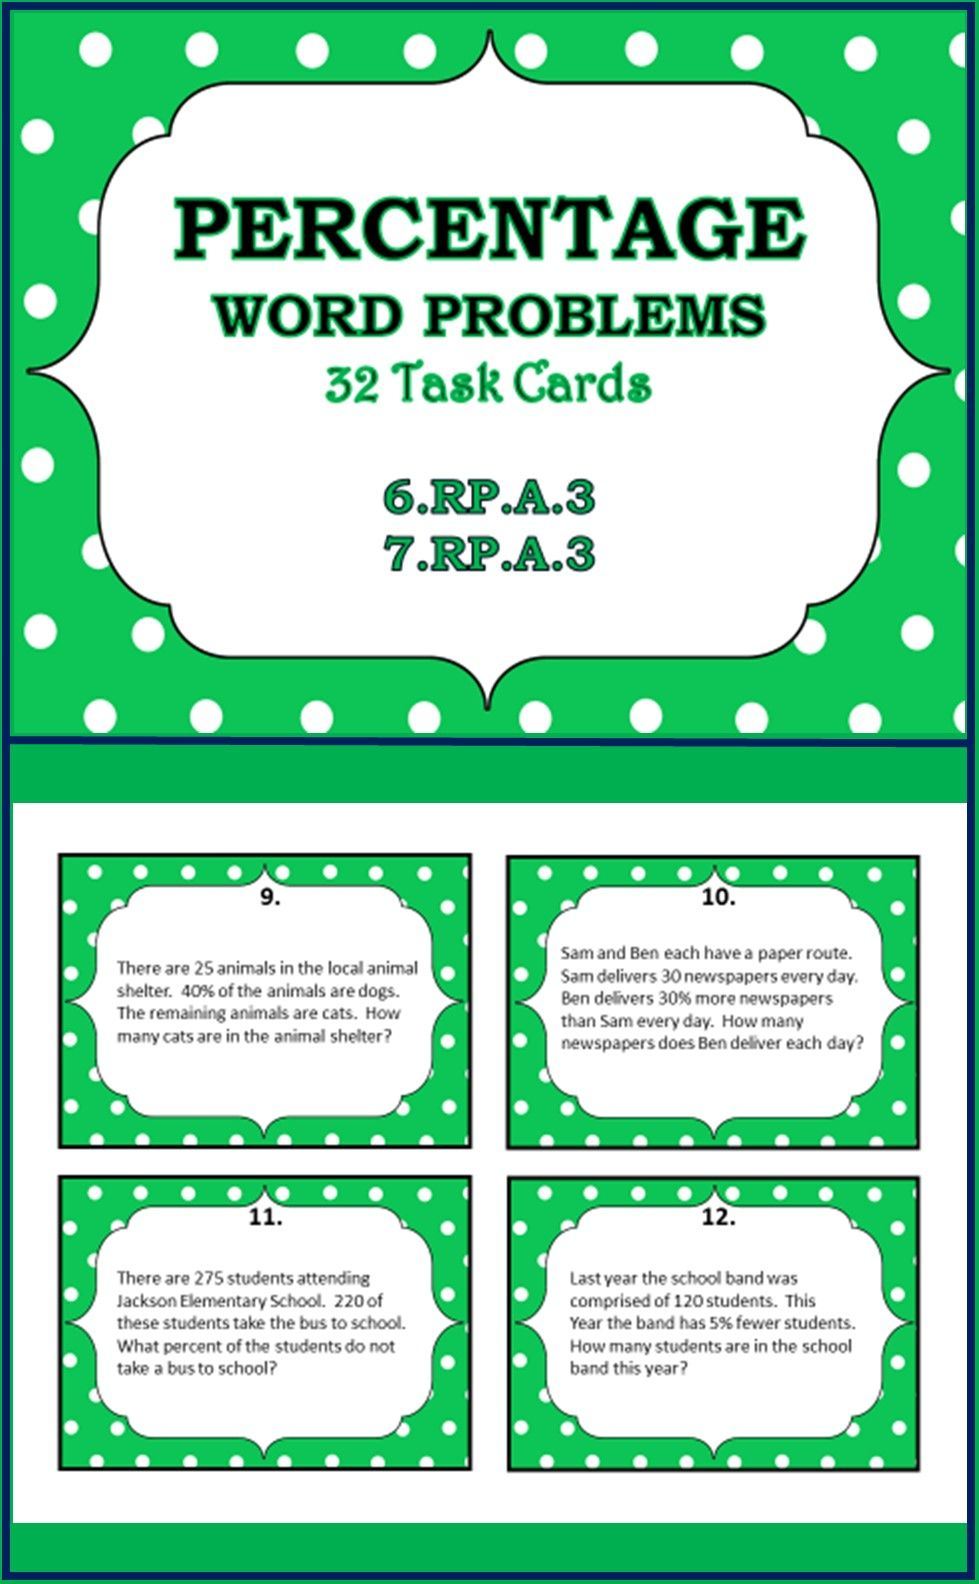 Percentage Word Problems Task Cards 32 Grades 6 7 8 Word Problems Percent Word Problems Word Problems Task Cards